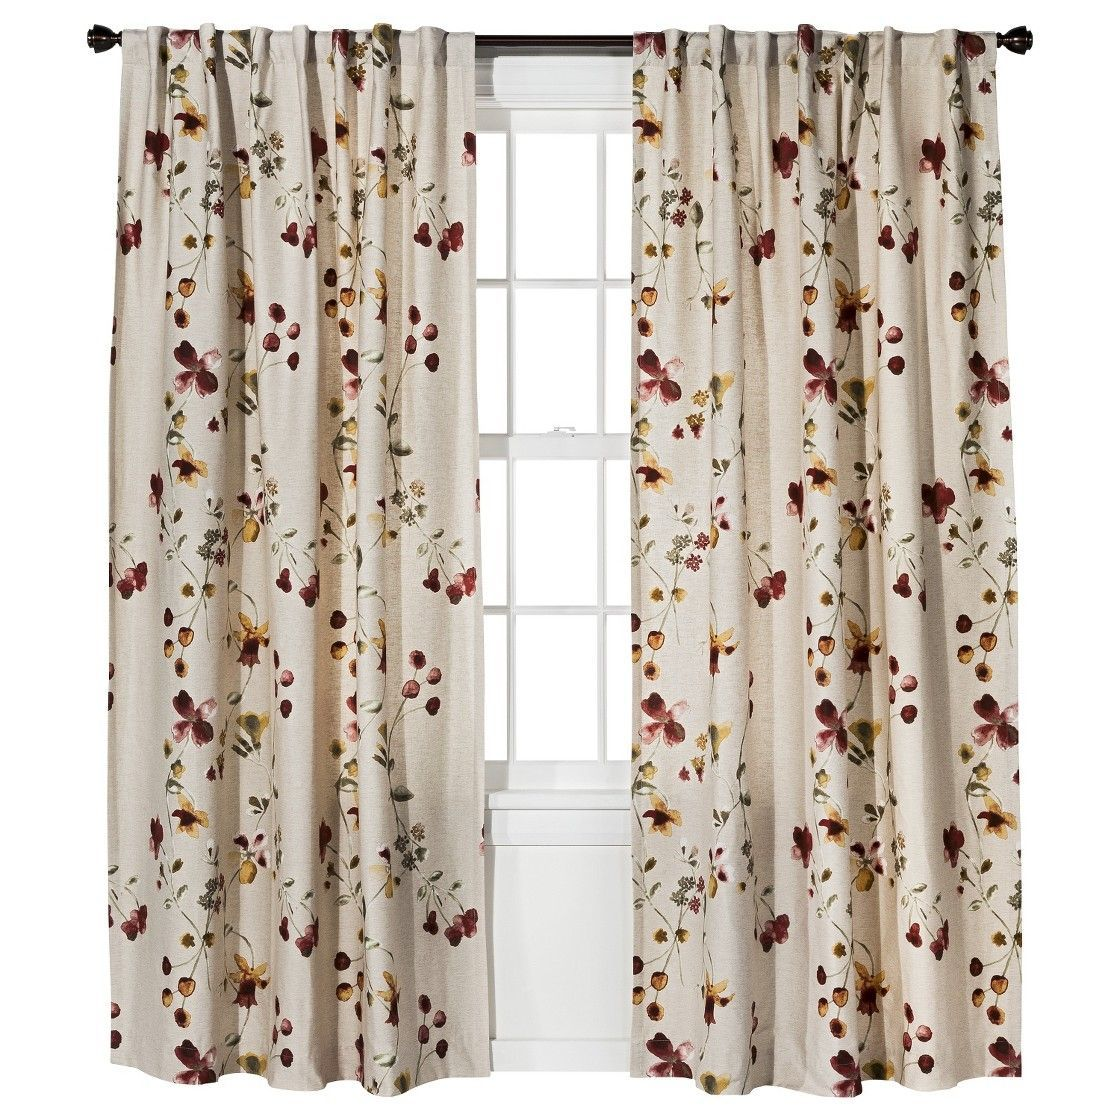 Hanging curtains in a corner living room curtains farmhousebrown